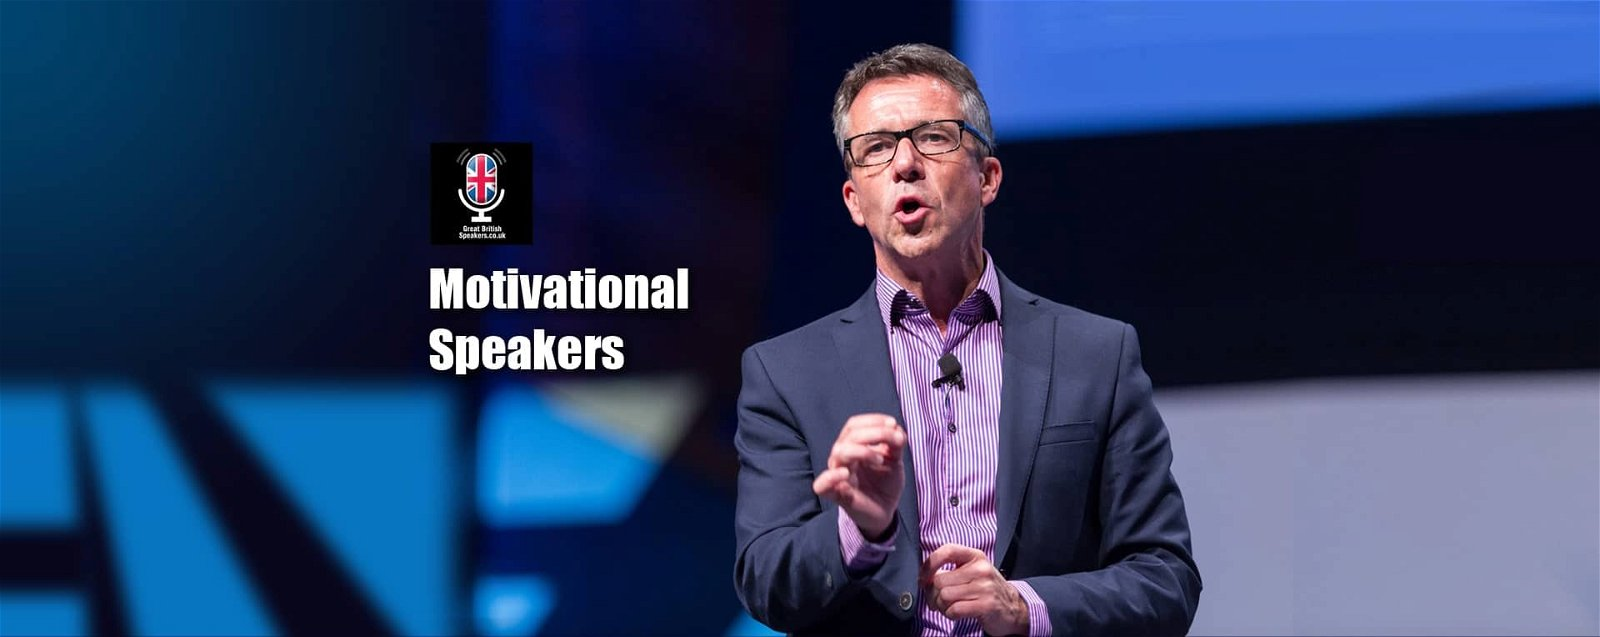 Motivational Speakers Slider Great British Speakers-min